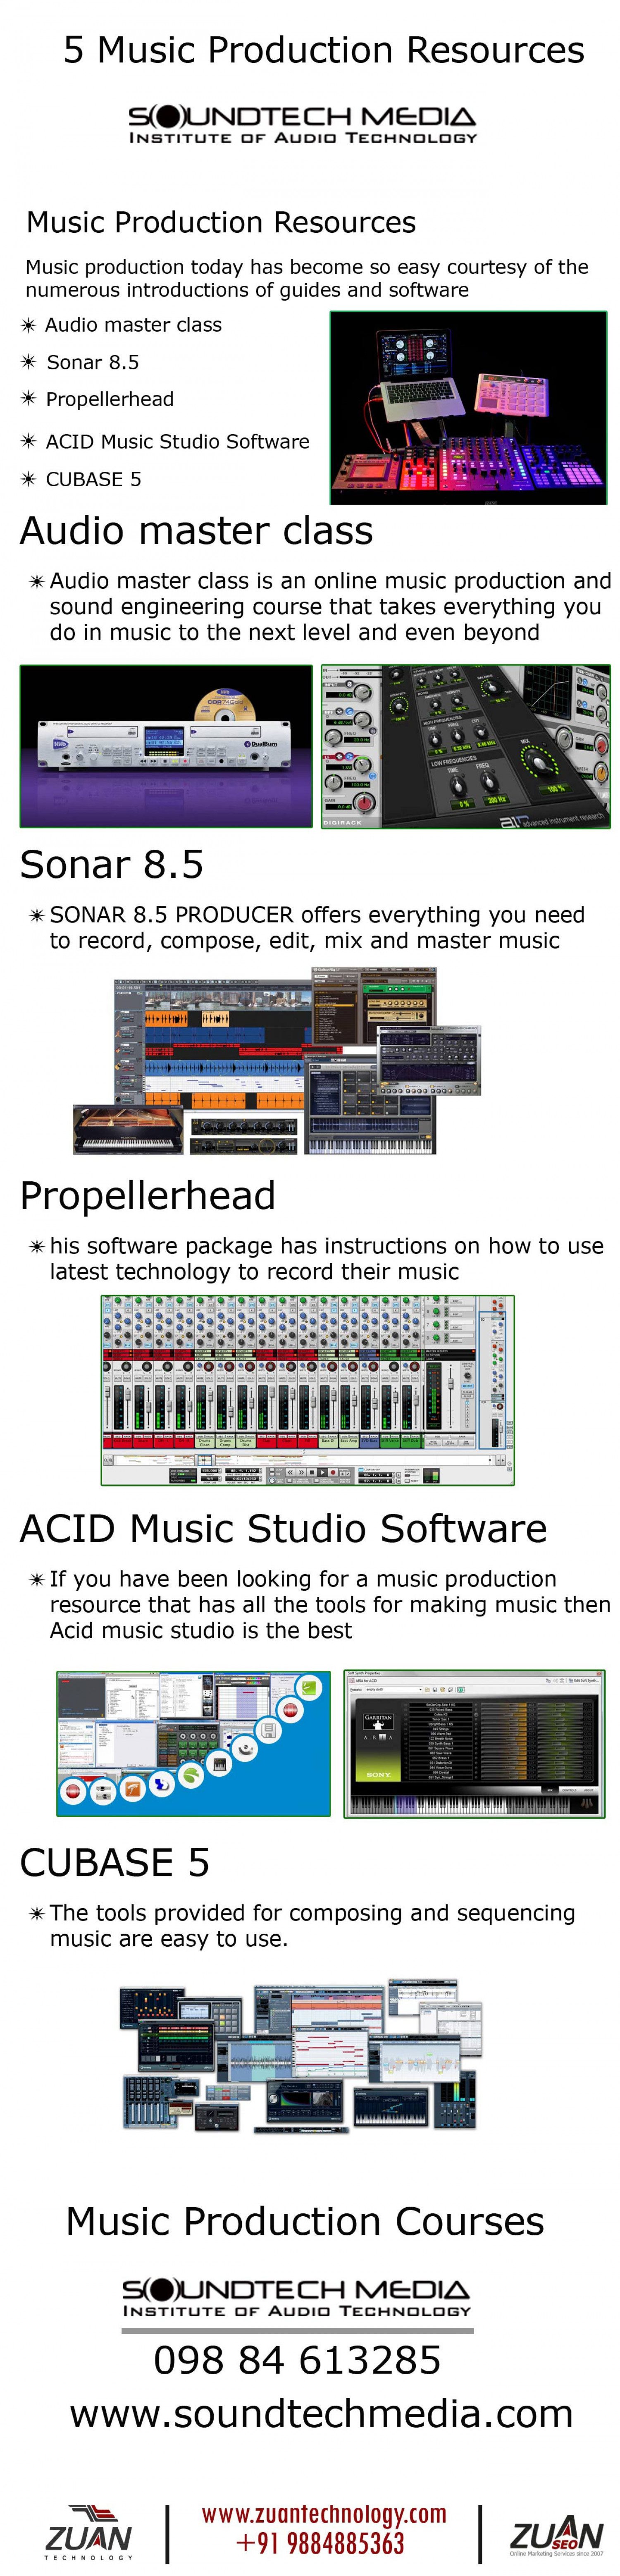 Top 5 Music Production Resources Infographic